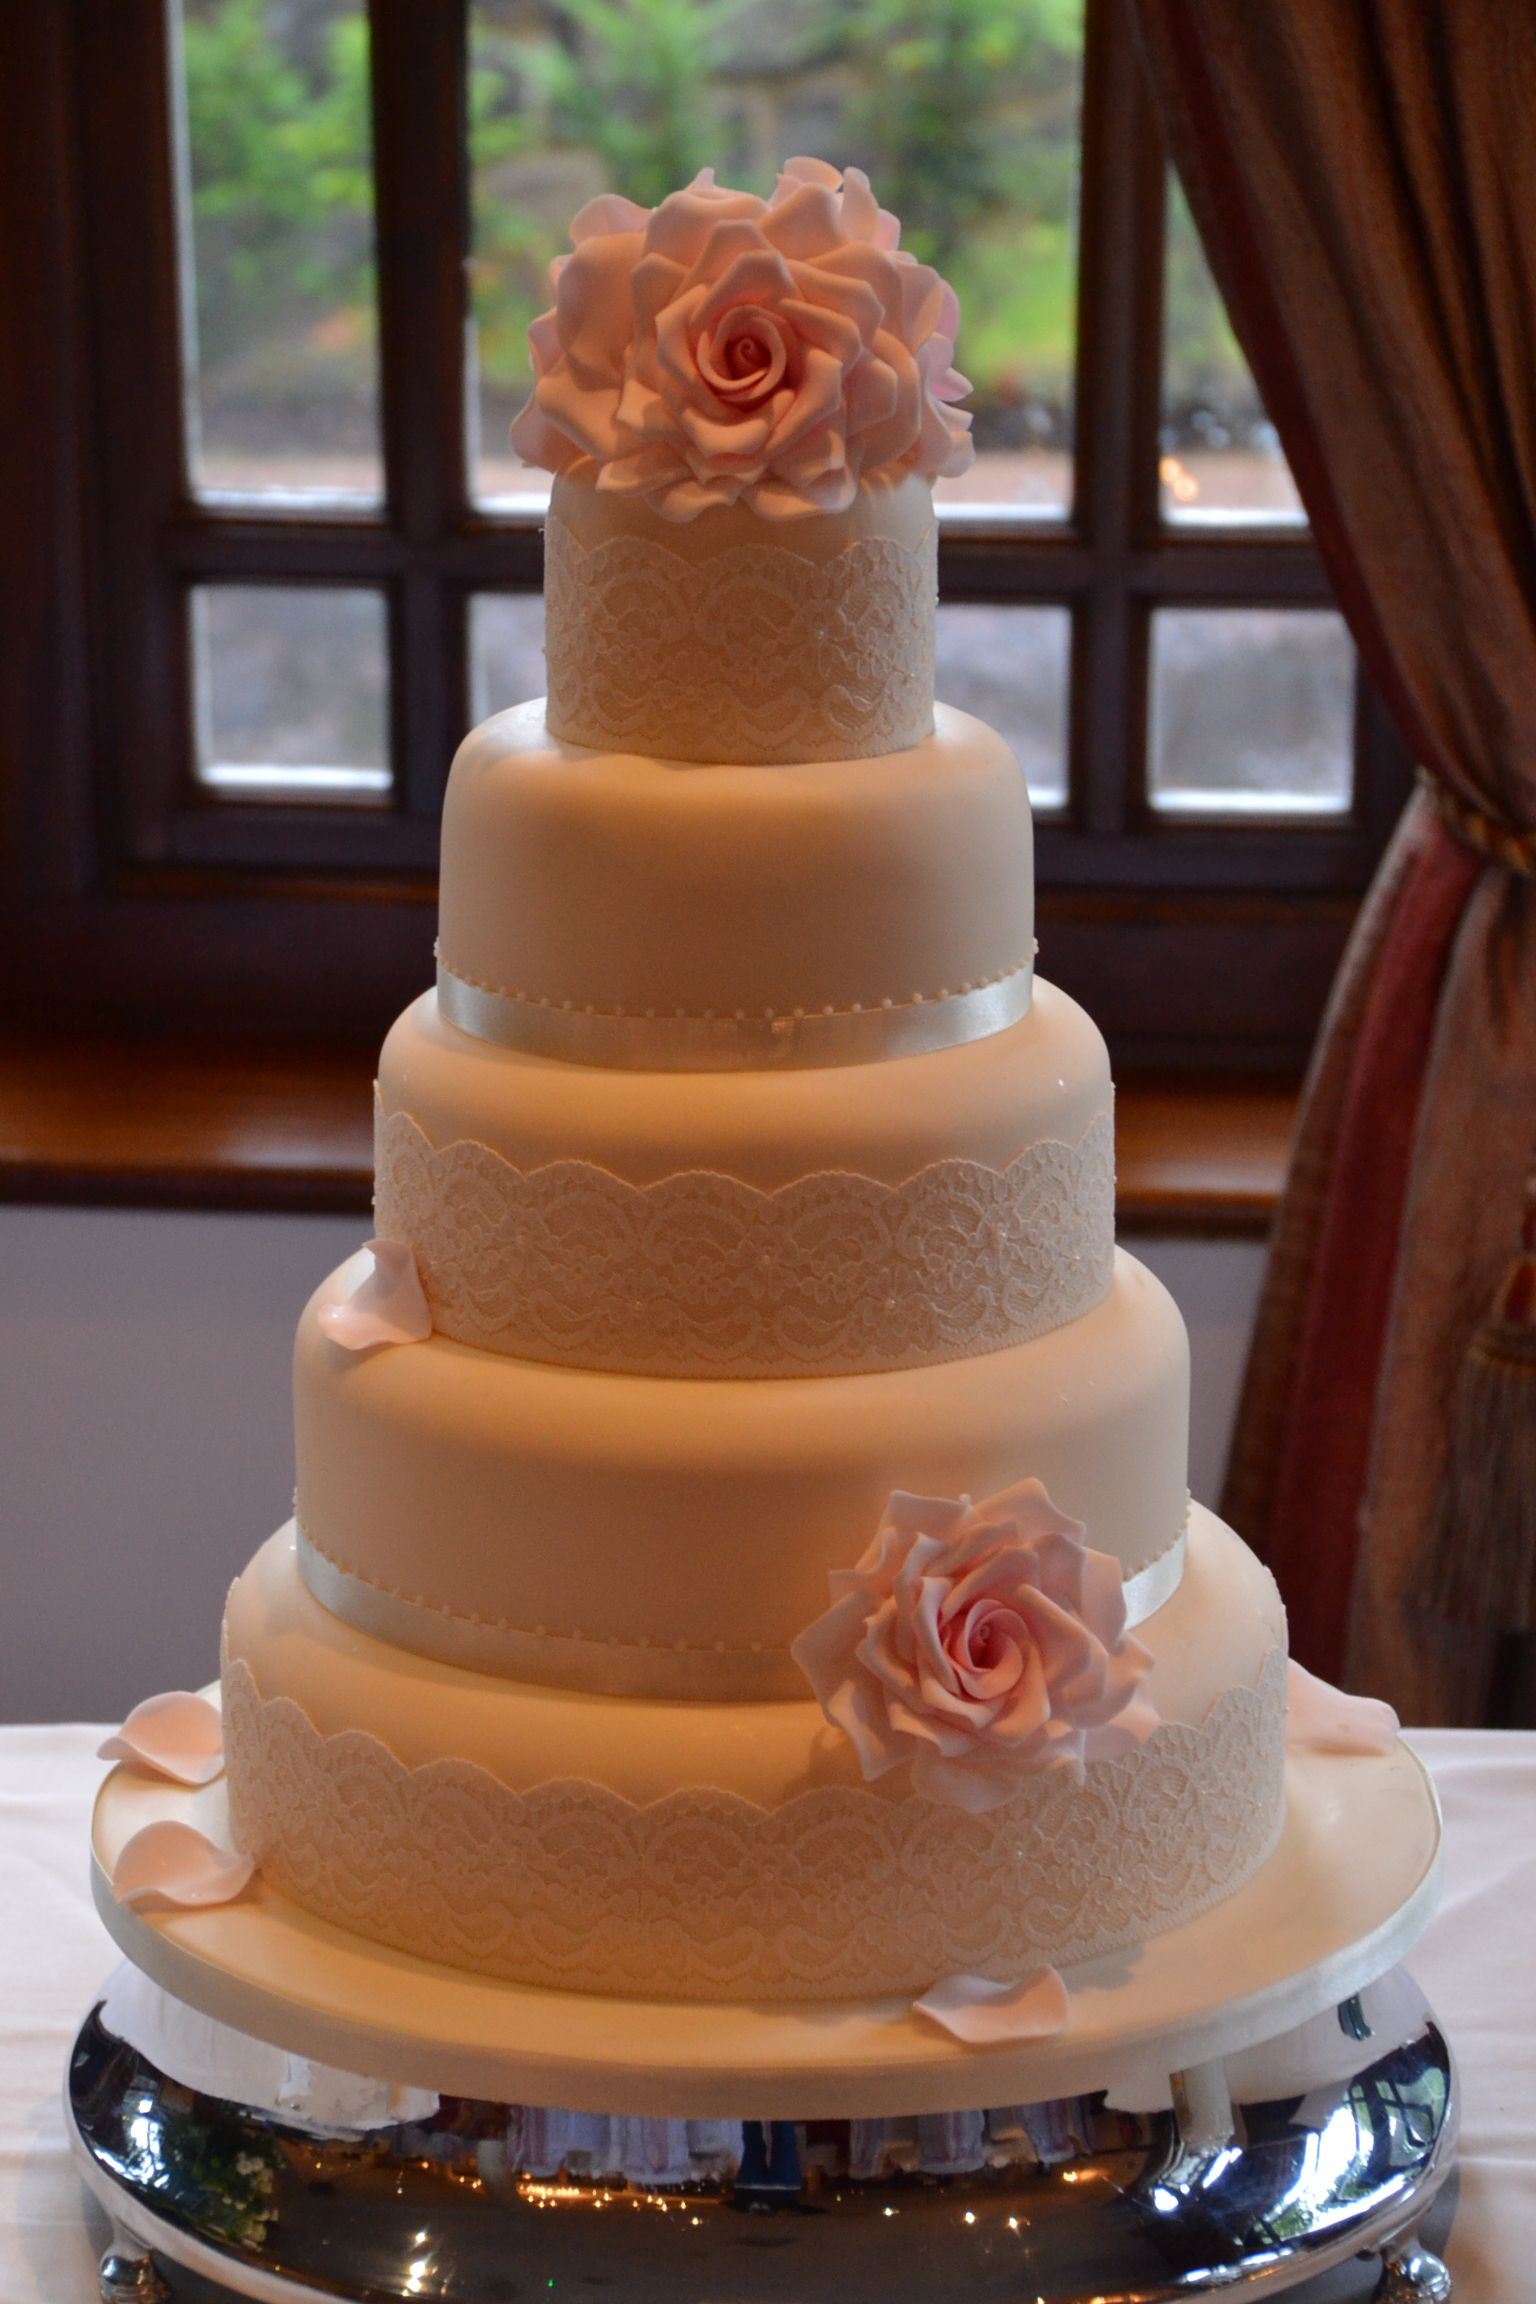 5 tier vintage wedding cake with sugar iced roses and lace